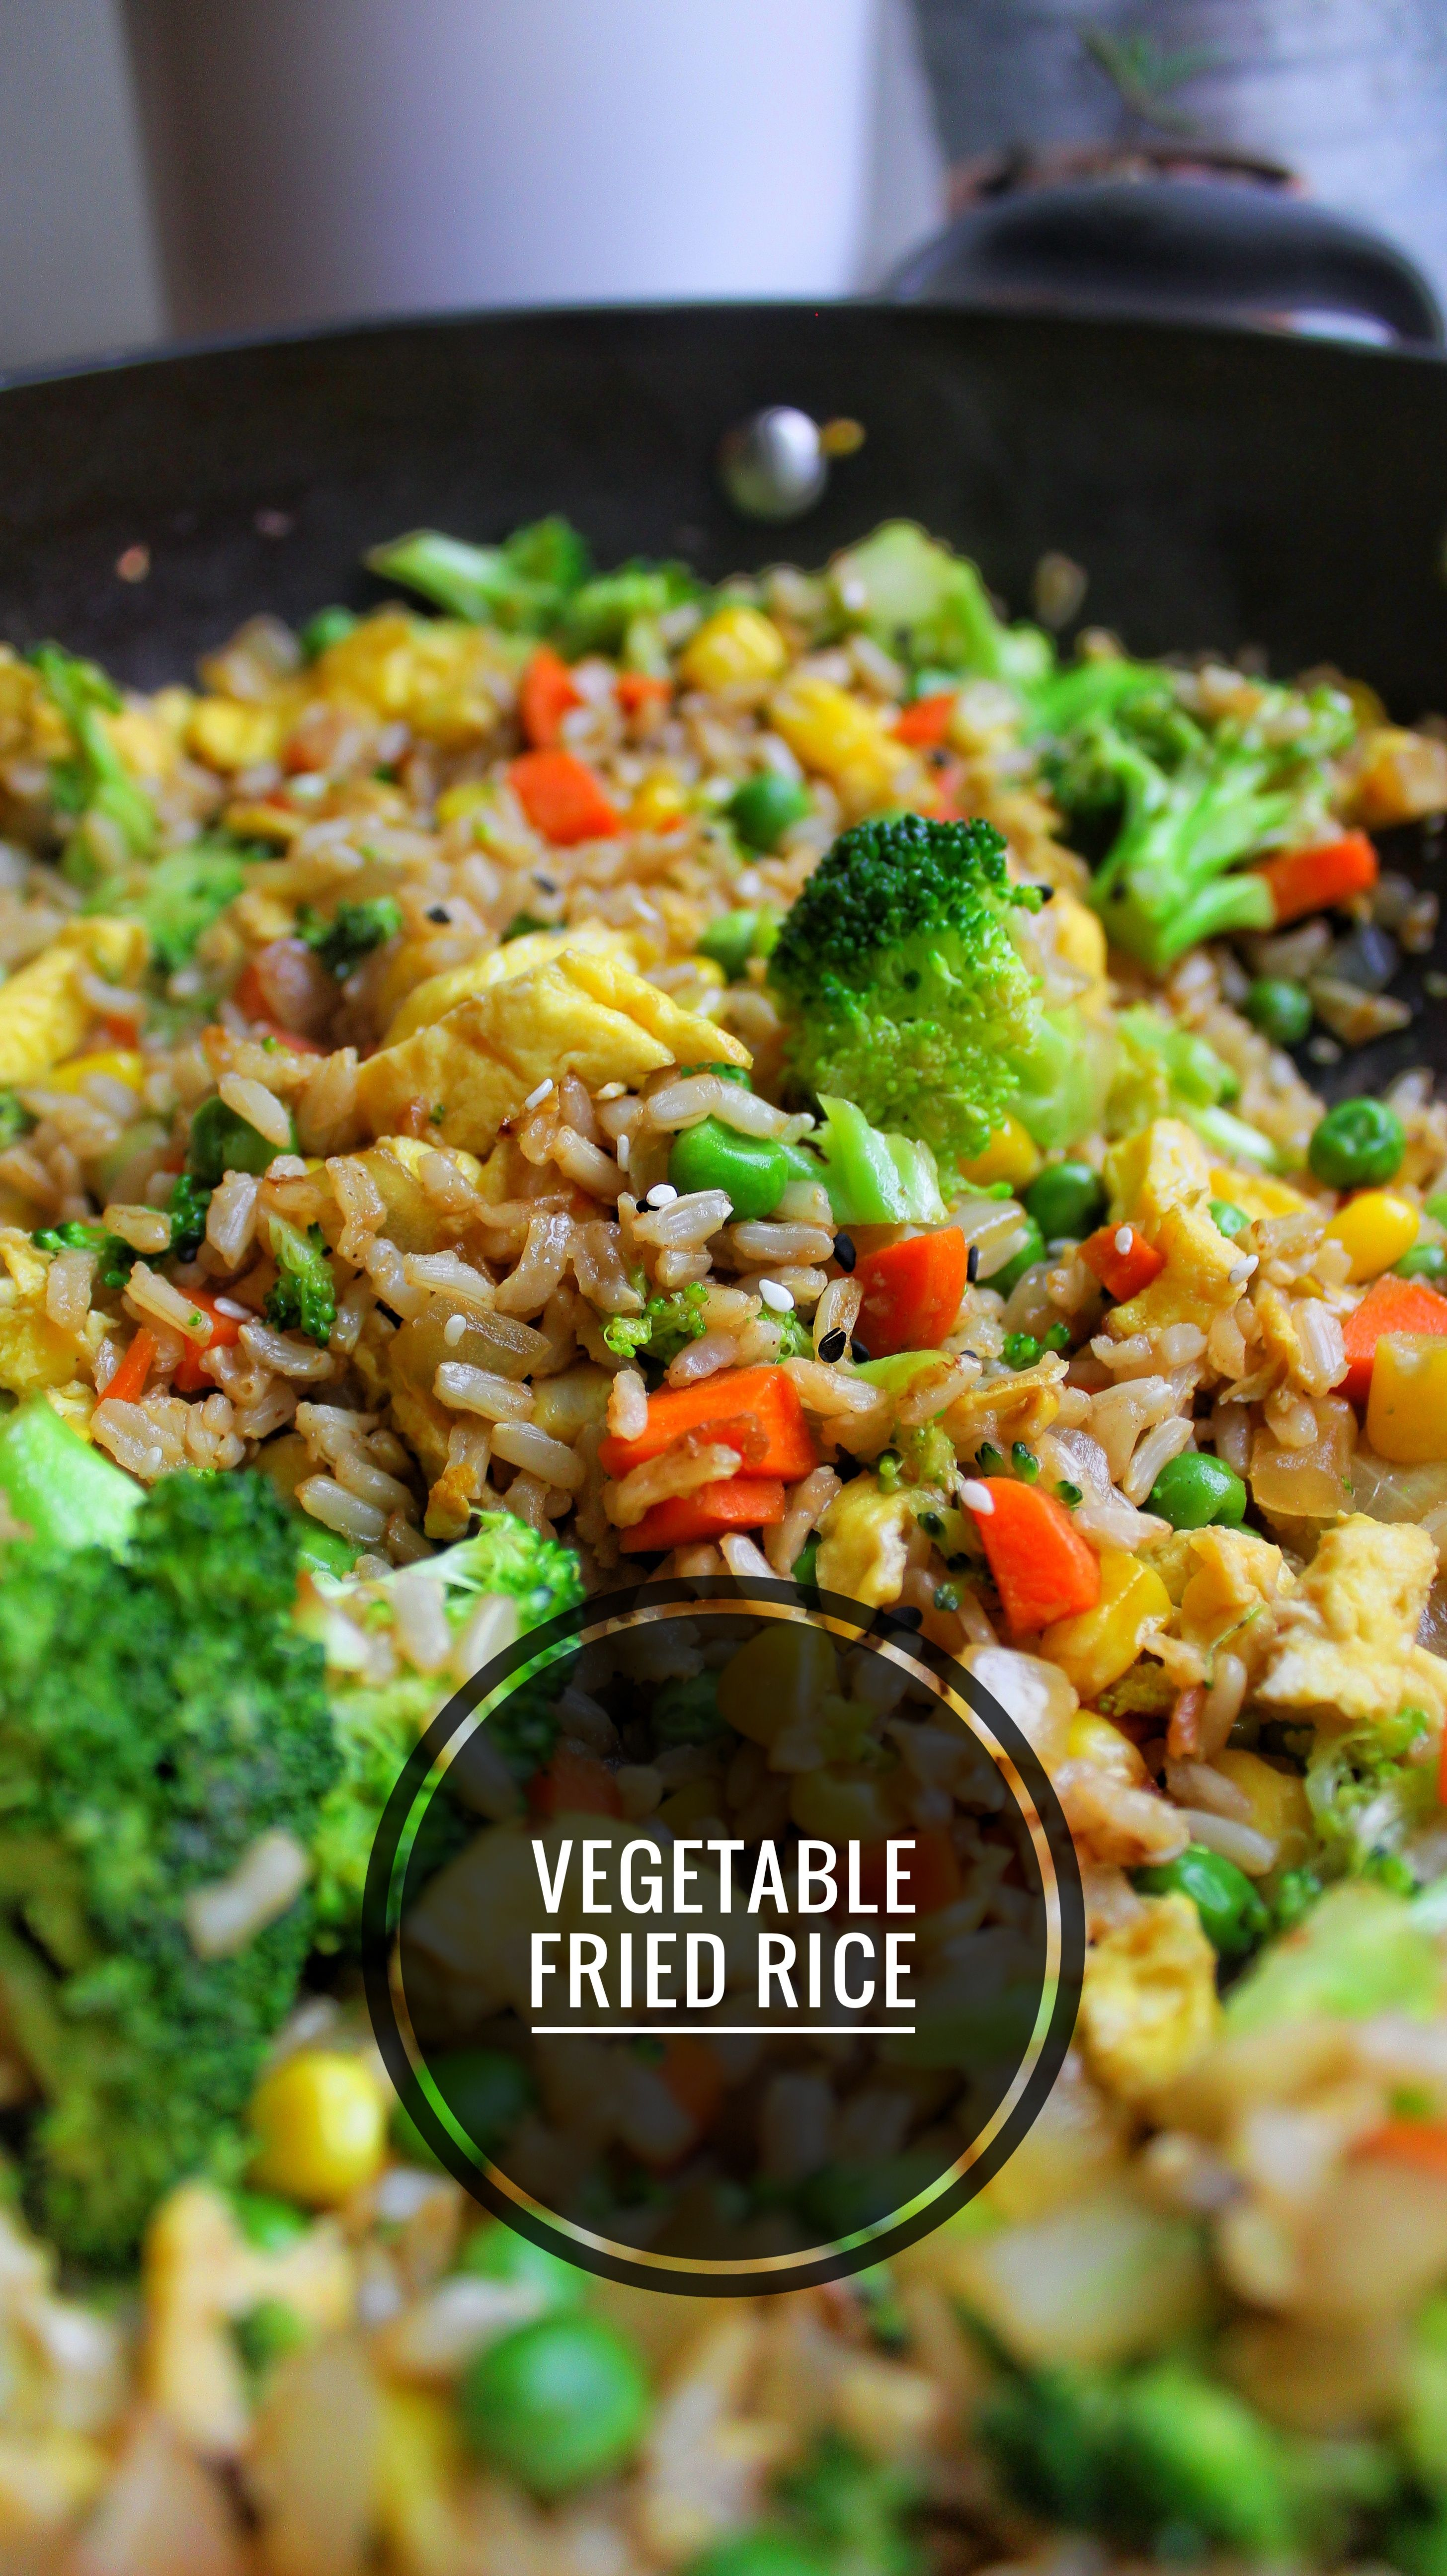 Vegetable Fried Rice Vegetarian Dishes Healthy Tasty Vegetarian Recipes Vegetarian Recipes Easy